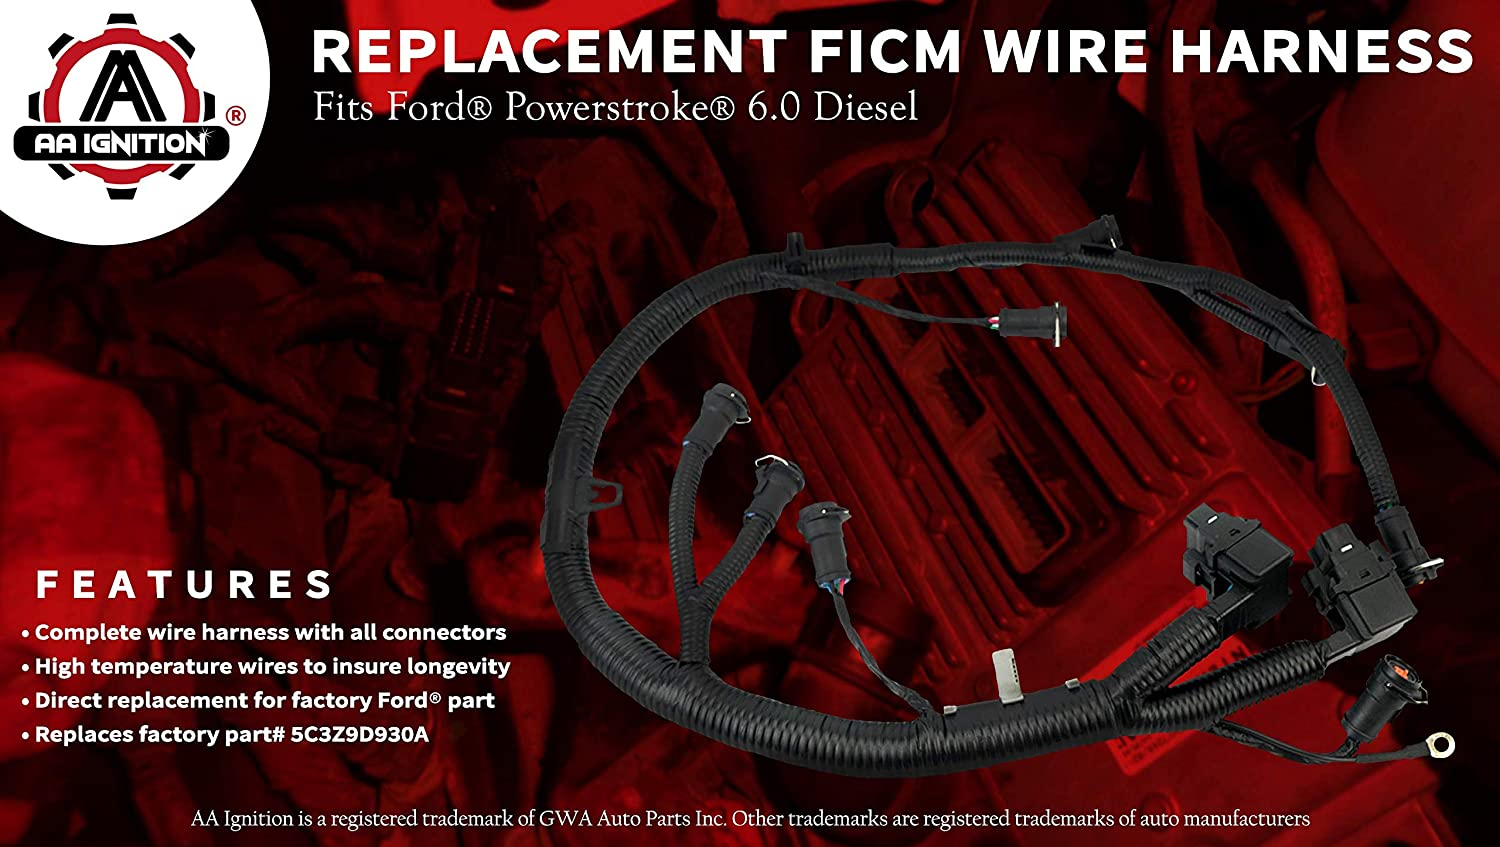 Amazon.com: FICM Engine Fuel Injector Complete Wire Harness ... on ford transmission diagram 5.8l, ford 5.8 engine diagram, ford super duty vacuum schematic, ford emissions diagram, ford vacuum diagrams f 250, ford 6.0 diesel parts diagram, ford f-350 engine schematics, ford f 350 parts diagram, ford 7.3l engine diagram,